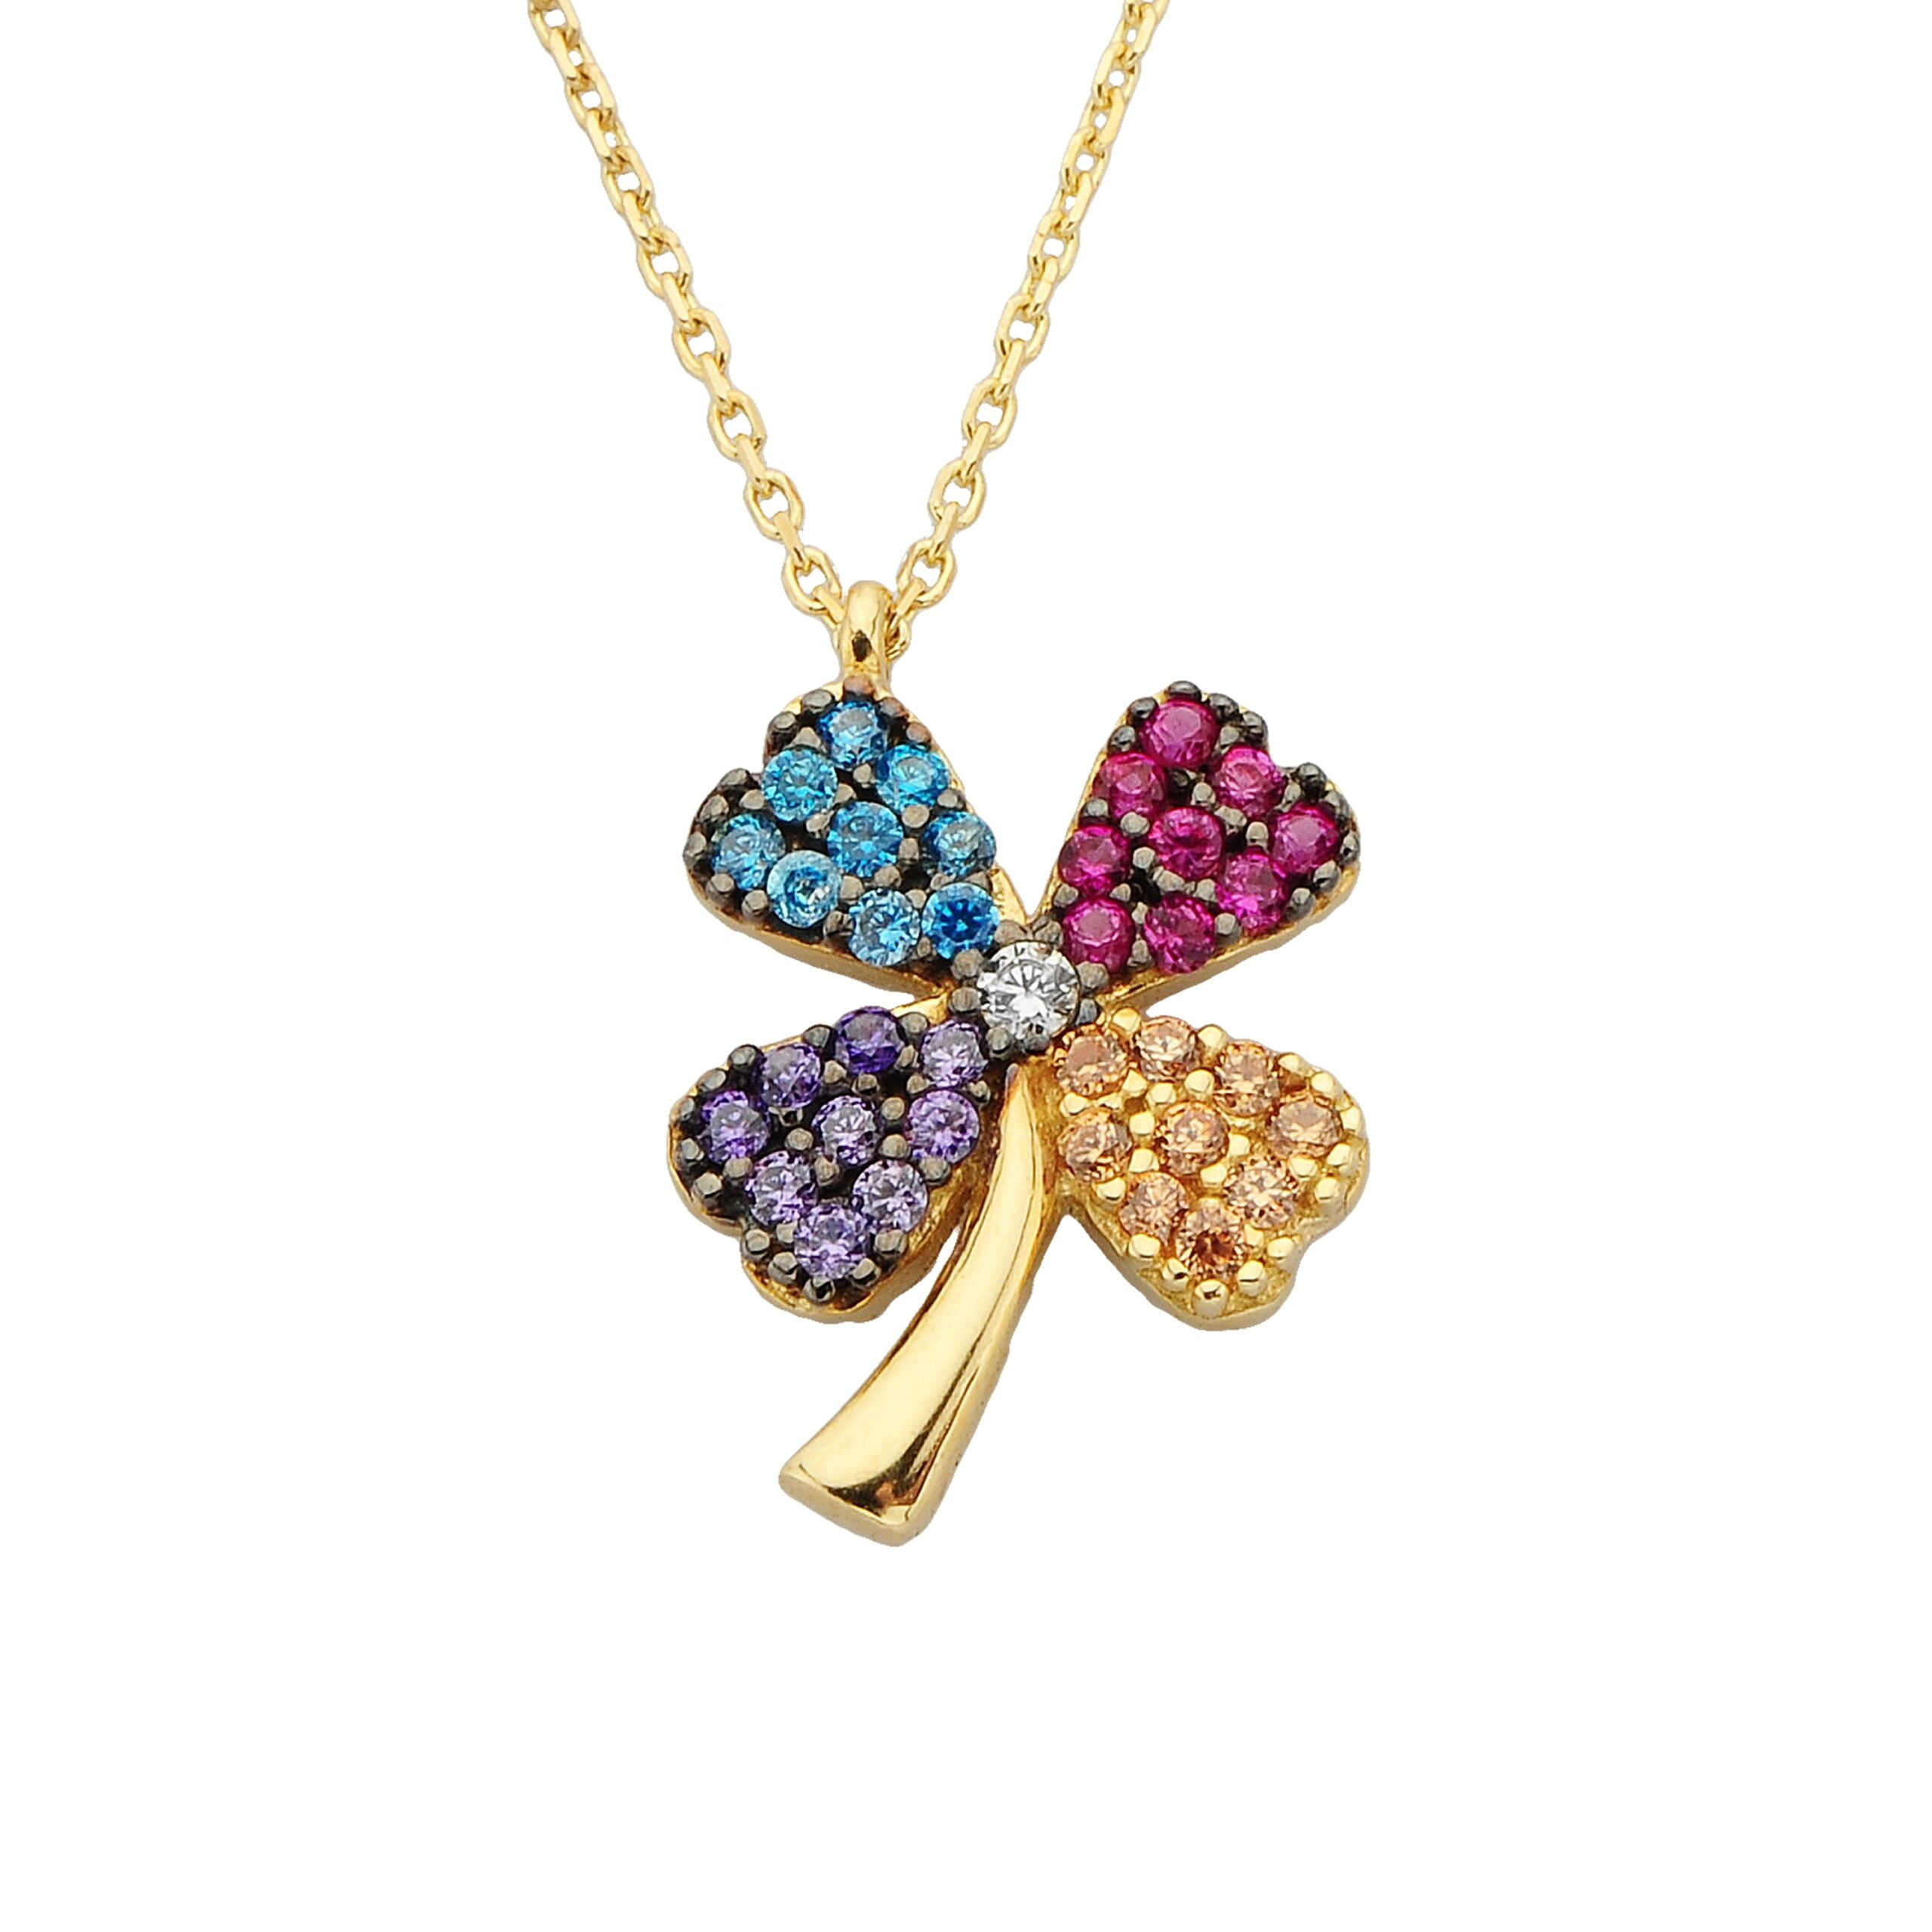 14k Real Solid Gold Four Leaf Clover Chain Necklace for Good Luck with Colorful Cubic Zirconia Best Friend Necklaces Birthday